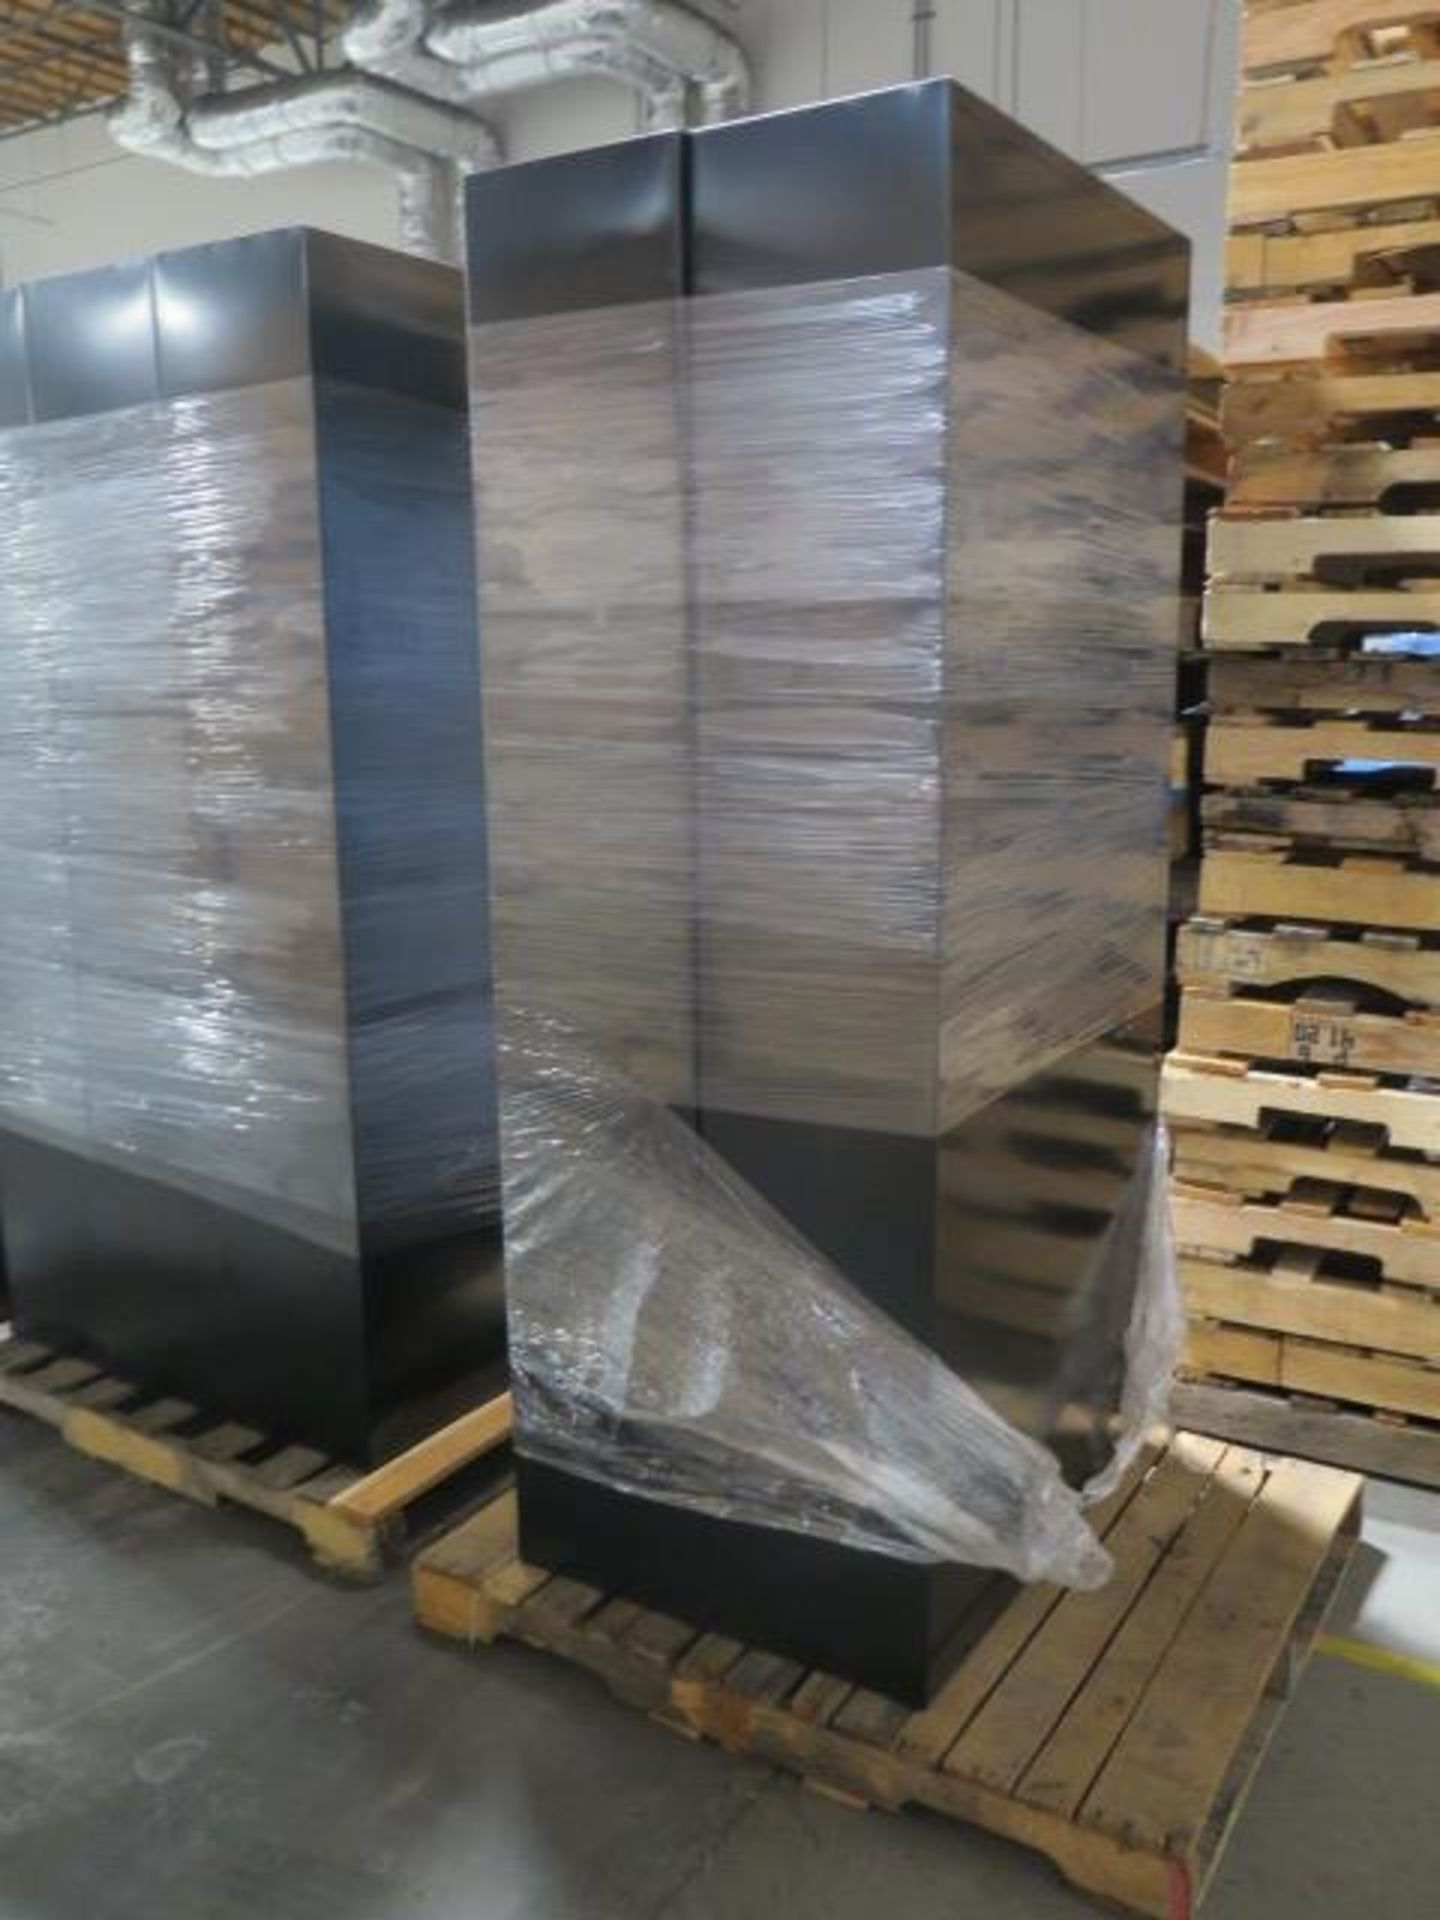 Large Quantity of Office Partitions, Desks, File Cabinets and Storage Cabinets (SOLD AS-IS - NO WARA - Image 11 of 24